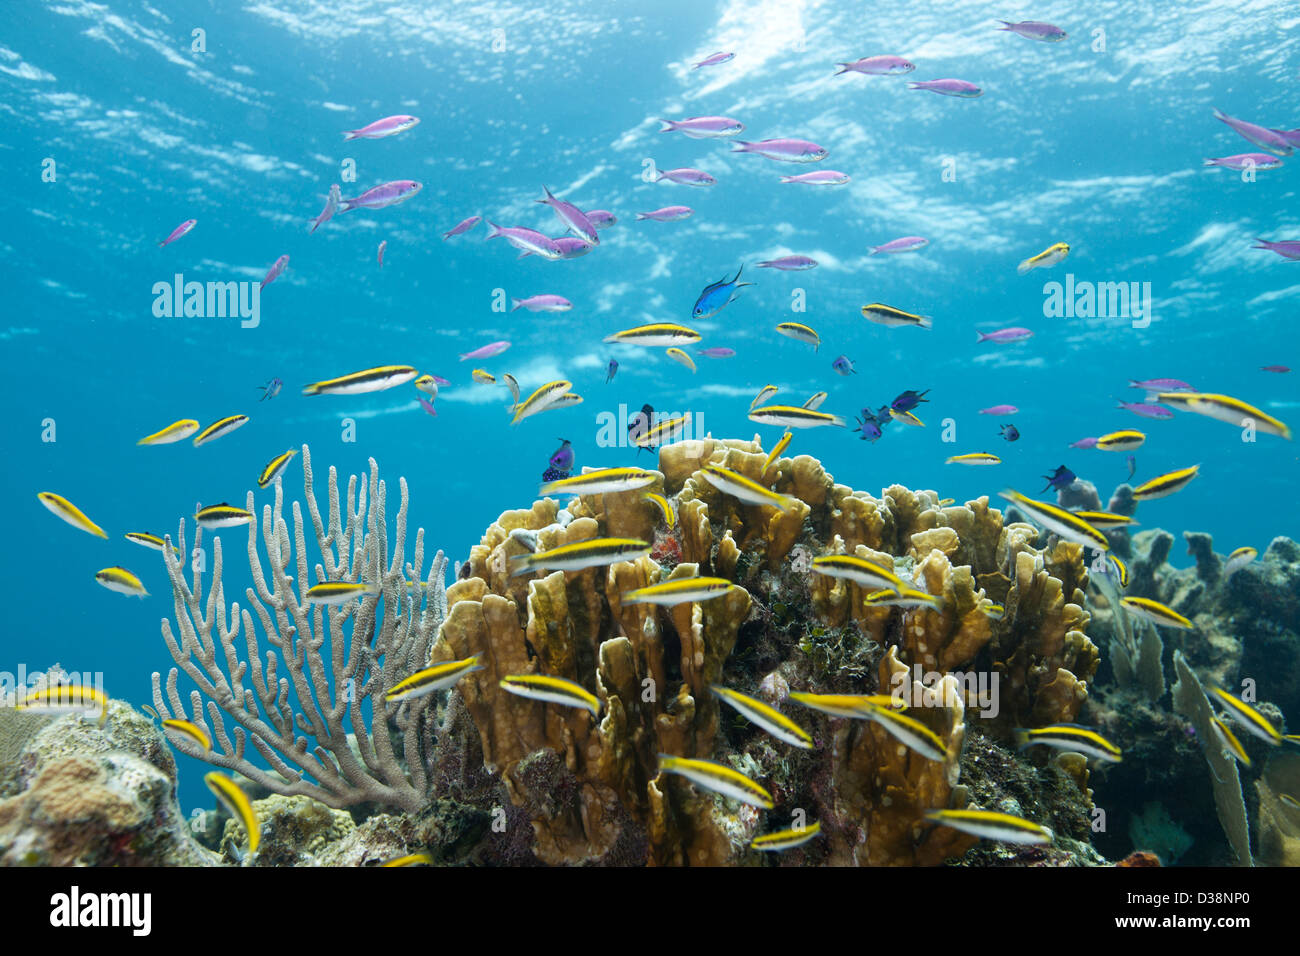 Colorful fish at tropical coral reef - Stock Image